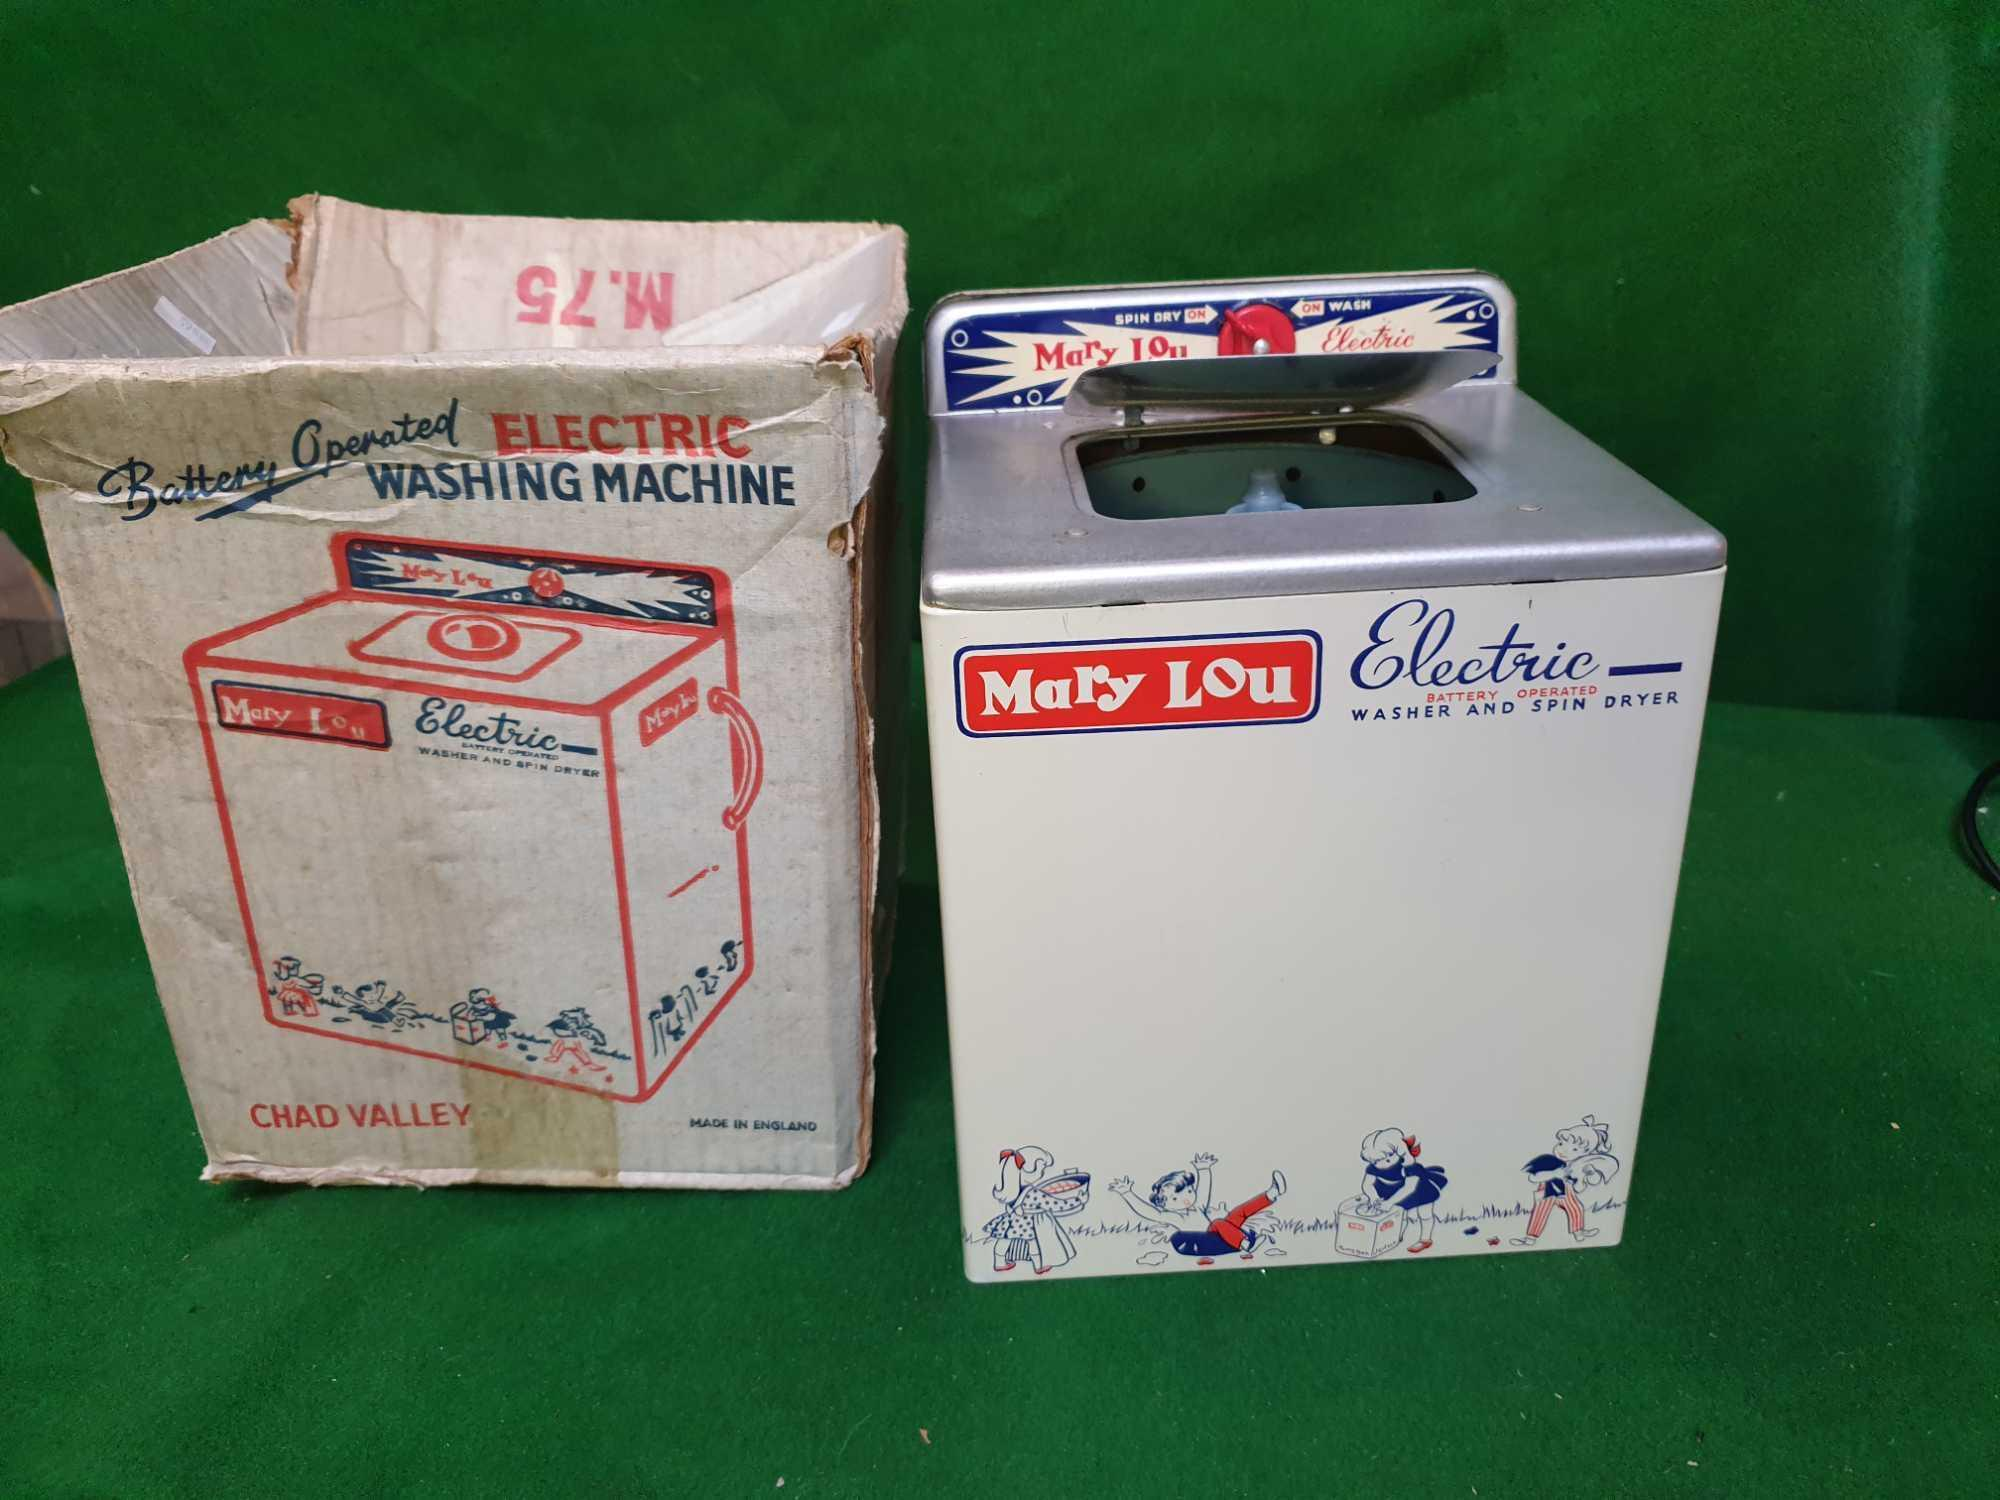 2 X Domestic Toys Comprising Of Chad Valley Mary Lou Electric Vintage Metal Toy Washing Machine With - Image 3 of 3